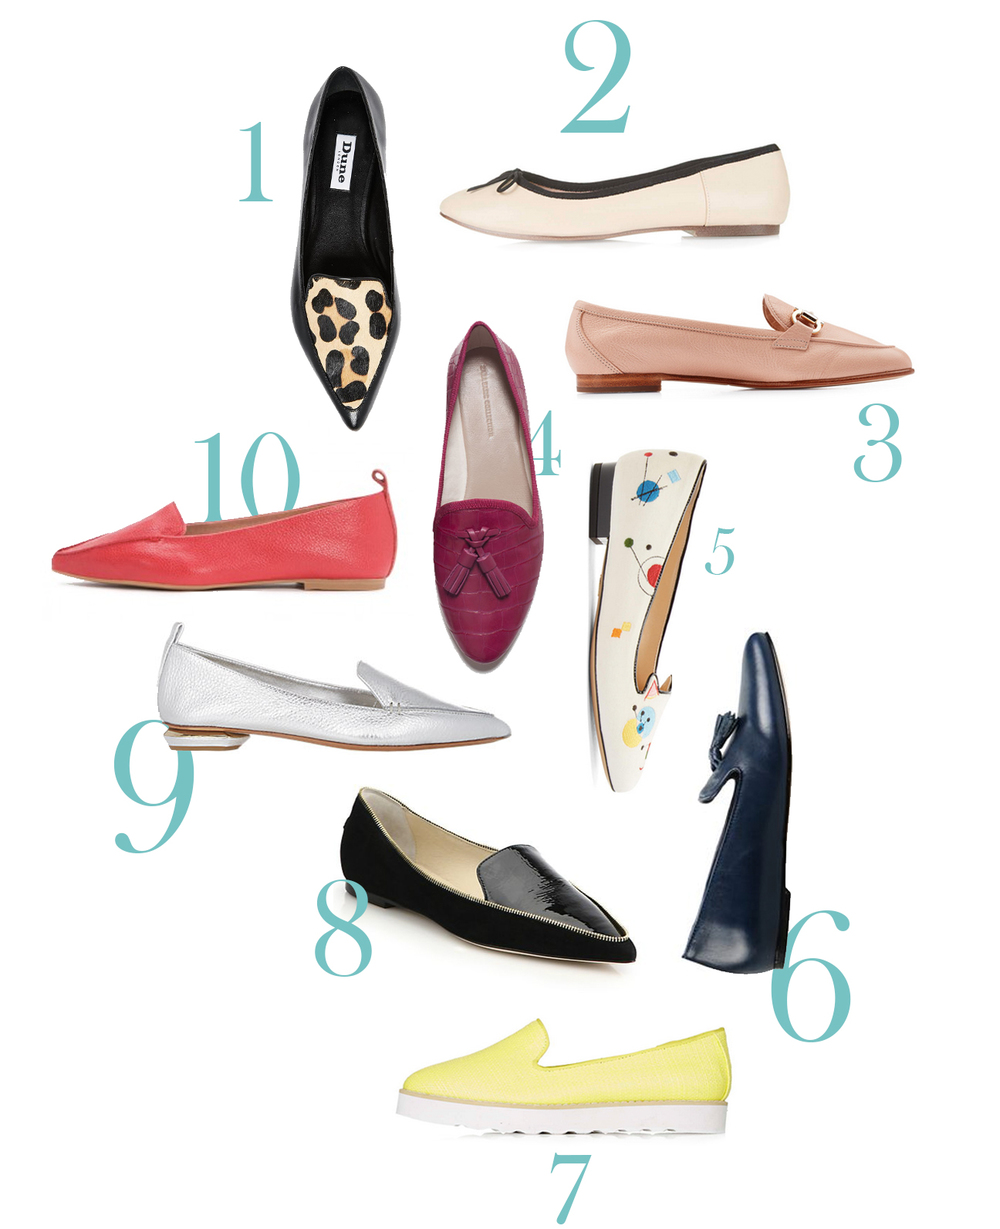 1. Dune Austine leopard flats ($145) // 2. Topshop Venice ballet flats ($32) // 3. Salvatore Ferragamo blush loafers ($485) // 4. Zara crocodile embossed tasselled flats in fuchsia ($36) // 5. Charlotte Olympia white velvet Abstract Kitty flats ($625) // 6. Leonardo Principi navy moccasins ($190) // 7. Topshop Seol flatform shoes ($64) // 8. Jimmy Choo Guild zip-trimmed flats ($625) // 9. Nicholas Kirkwood metallic loafers ($468) // 10. Jeffrey Campbell Smoking flats ($130)